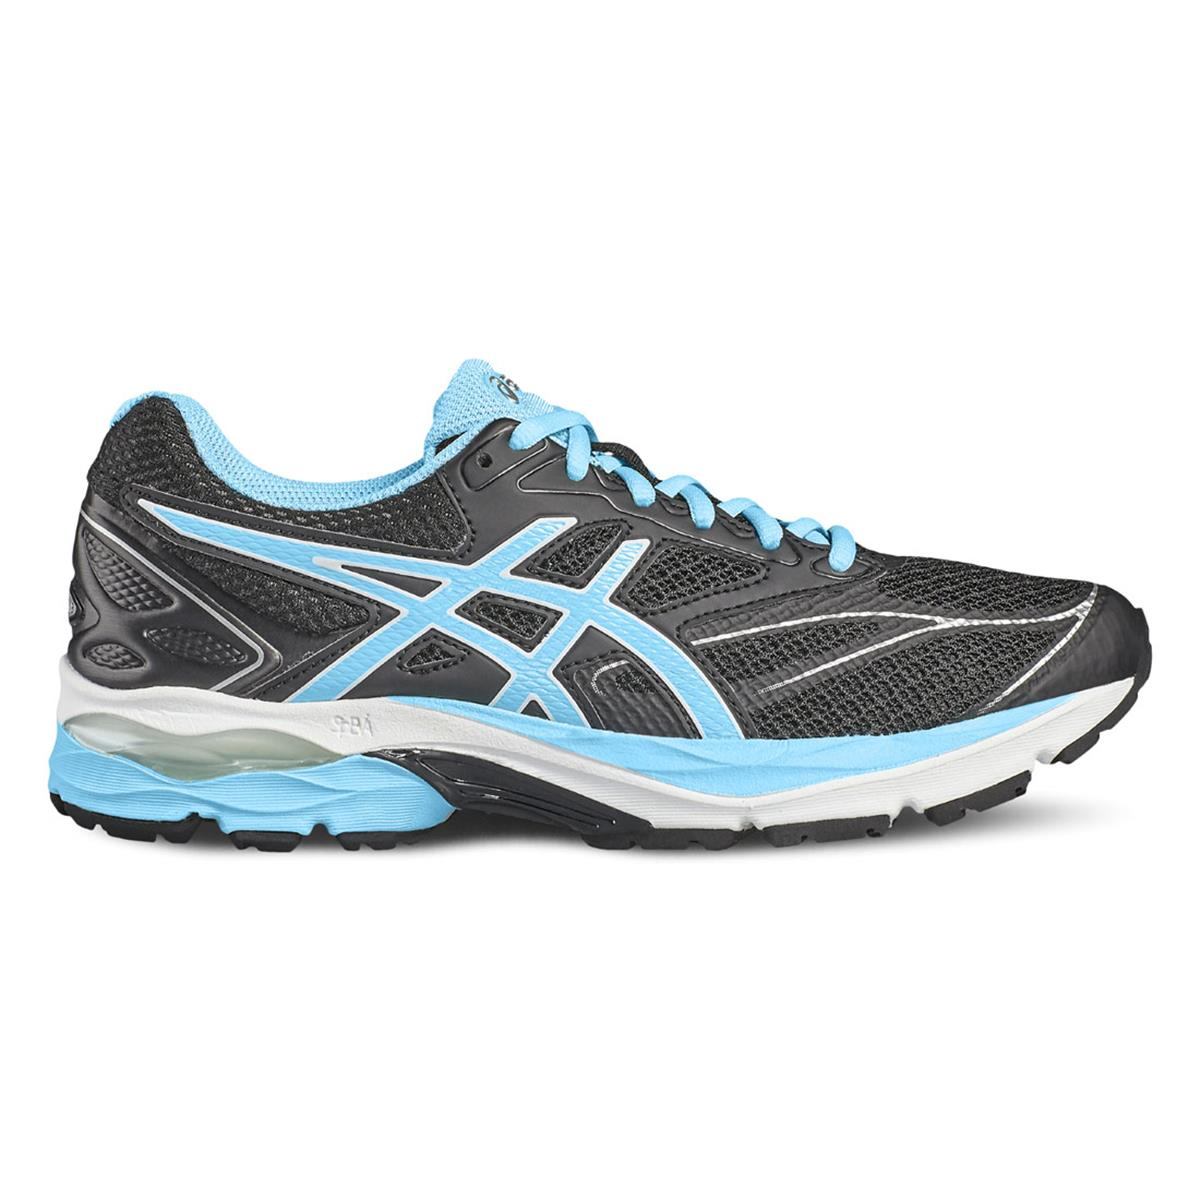 Asics Gel Pulse  Running Shoes Womens Review